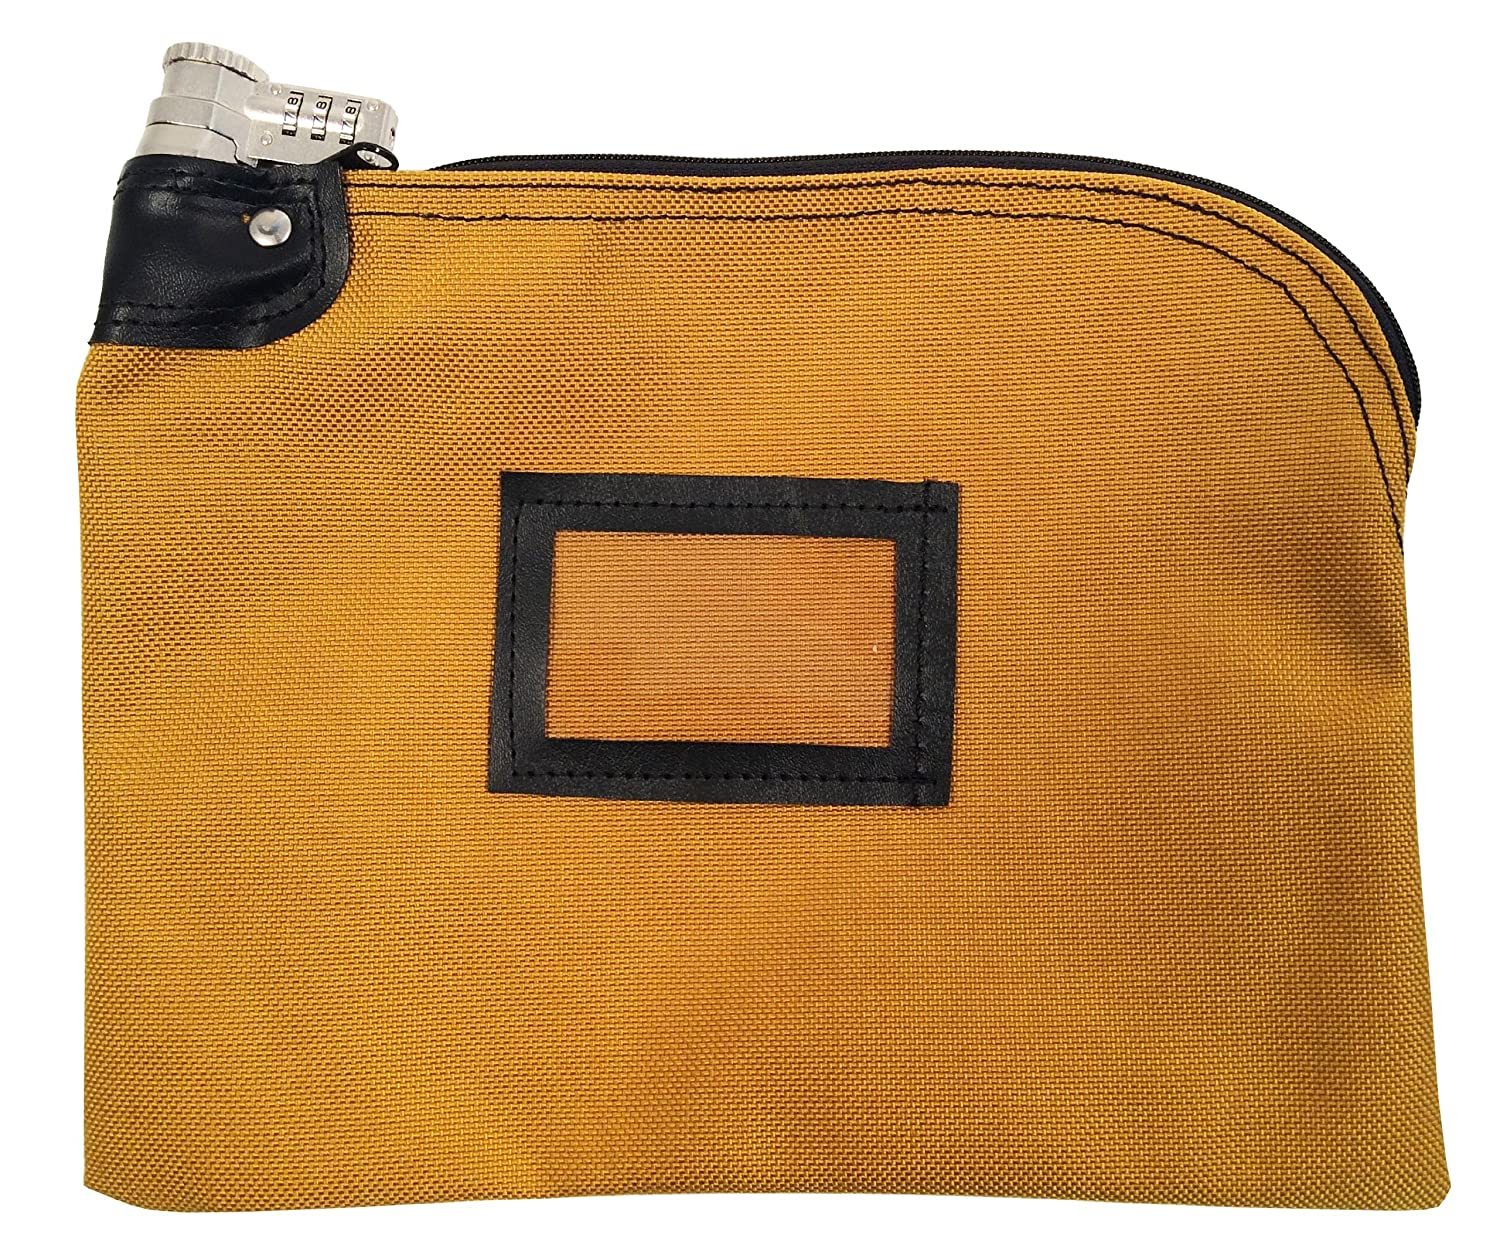 Lockable Bank Bag 1000 Denier Nylon Combination Keyed Security System (Gold) Cardinal Bag Supplies 76161260